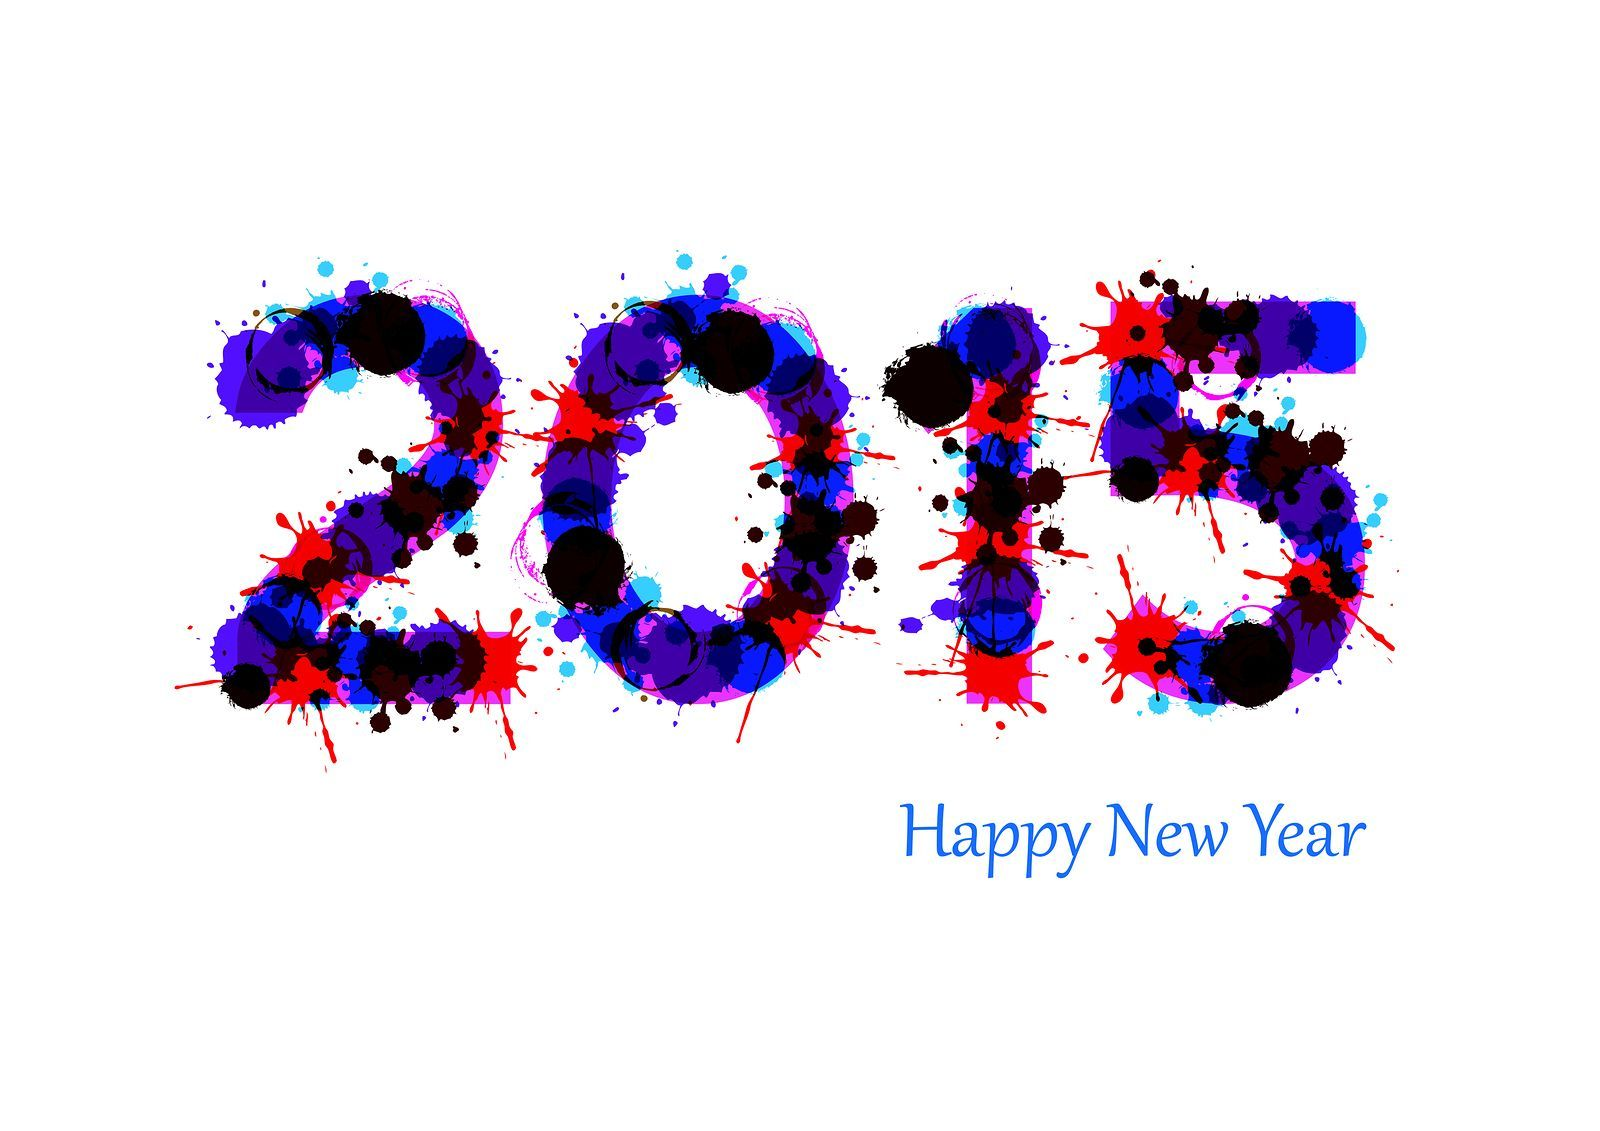 And we would also like to wish you a very Happy New Year 2015!